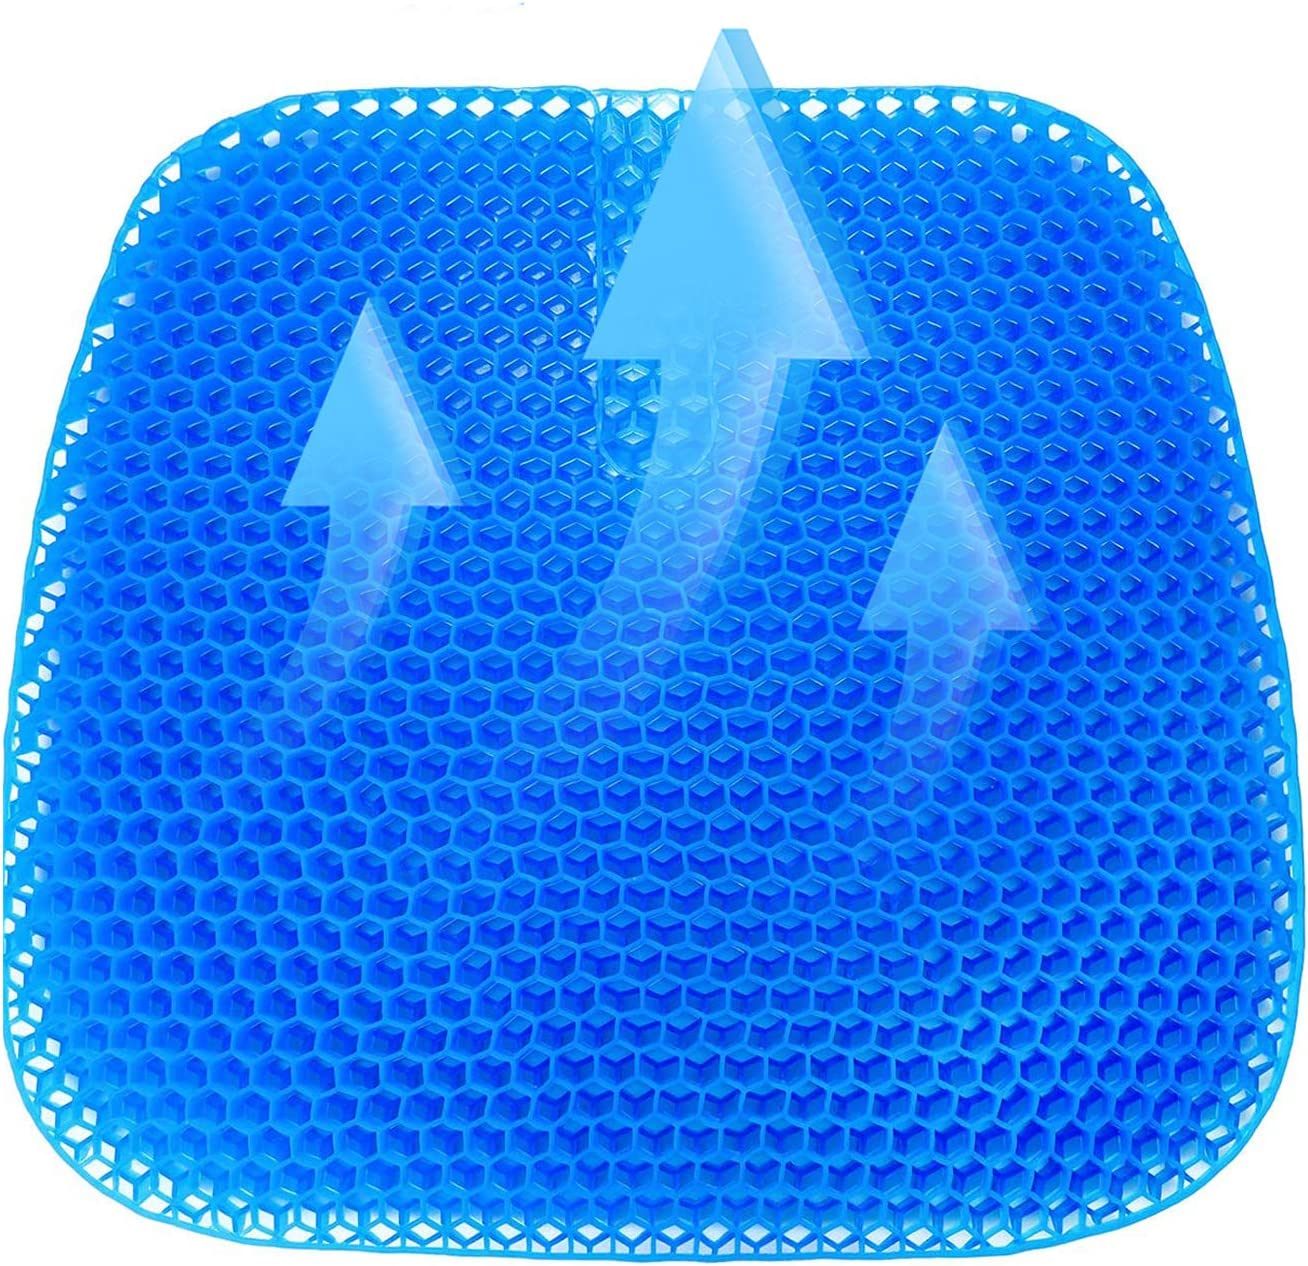 SUNKONG Gel Seat Cushion, Upgraded Office Chair Double Thick Seat Cushion,Super Breathable Honeycomb Design Relief Butt Pain Gel Cushion for Seniors, Office Worker, Driver,Pregnant,Student